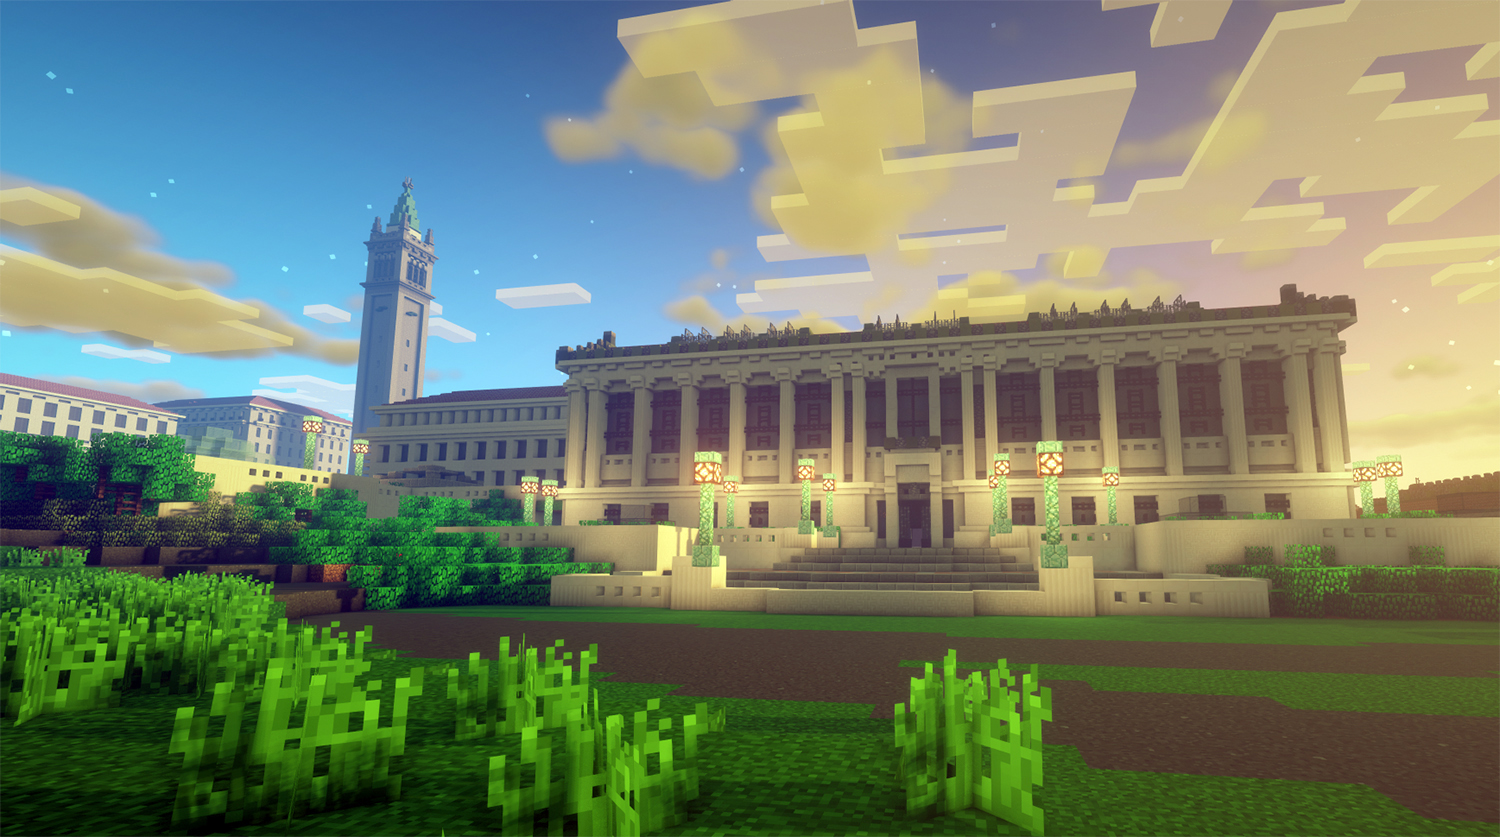 Fiat Blocks: Students use Minecraft to build UC Berkeley (and its